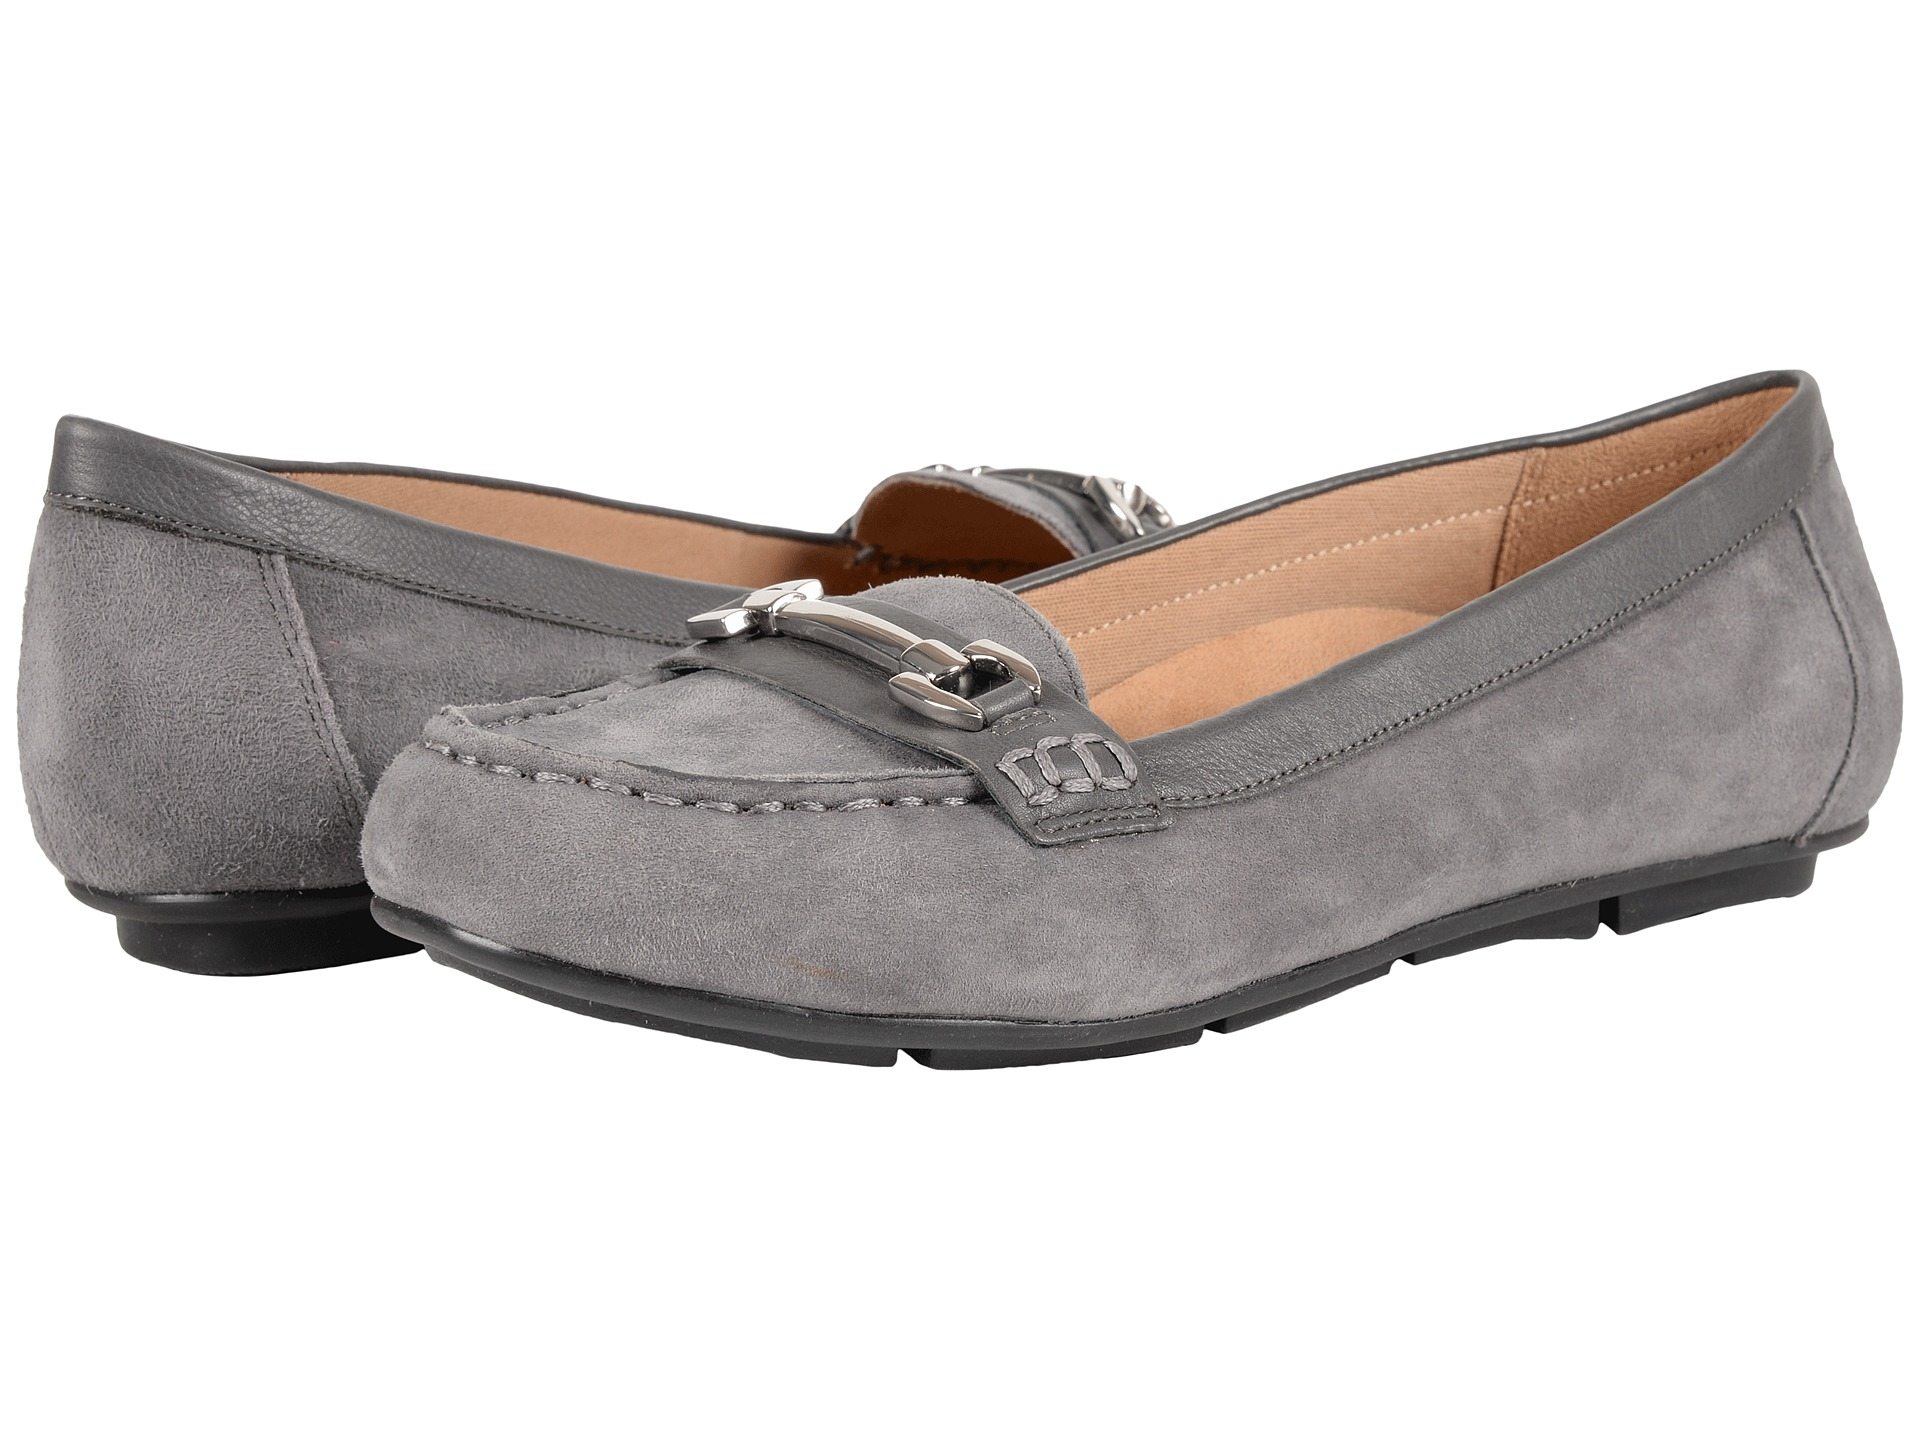 VIONIC Chill Kenya Loafer Grey - Zappos.com Free Shipping BOTH Ways